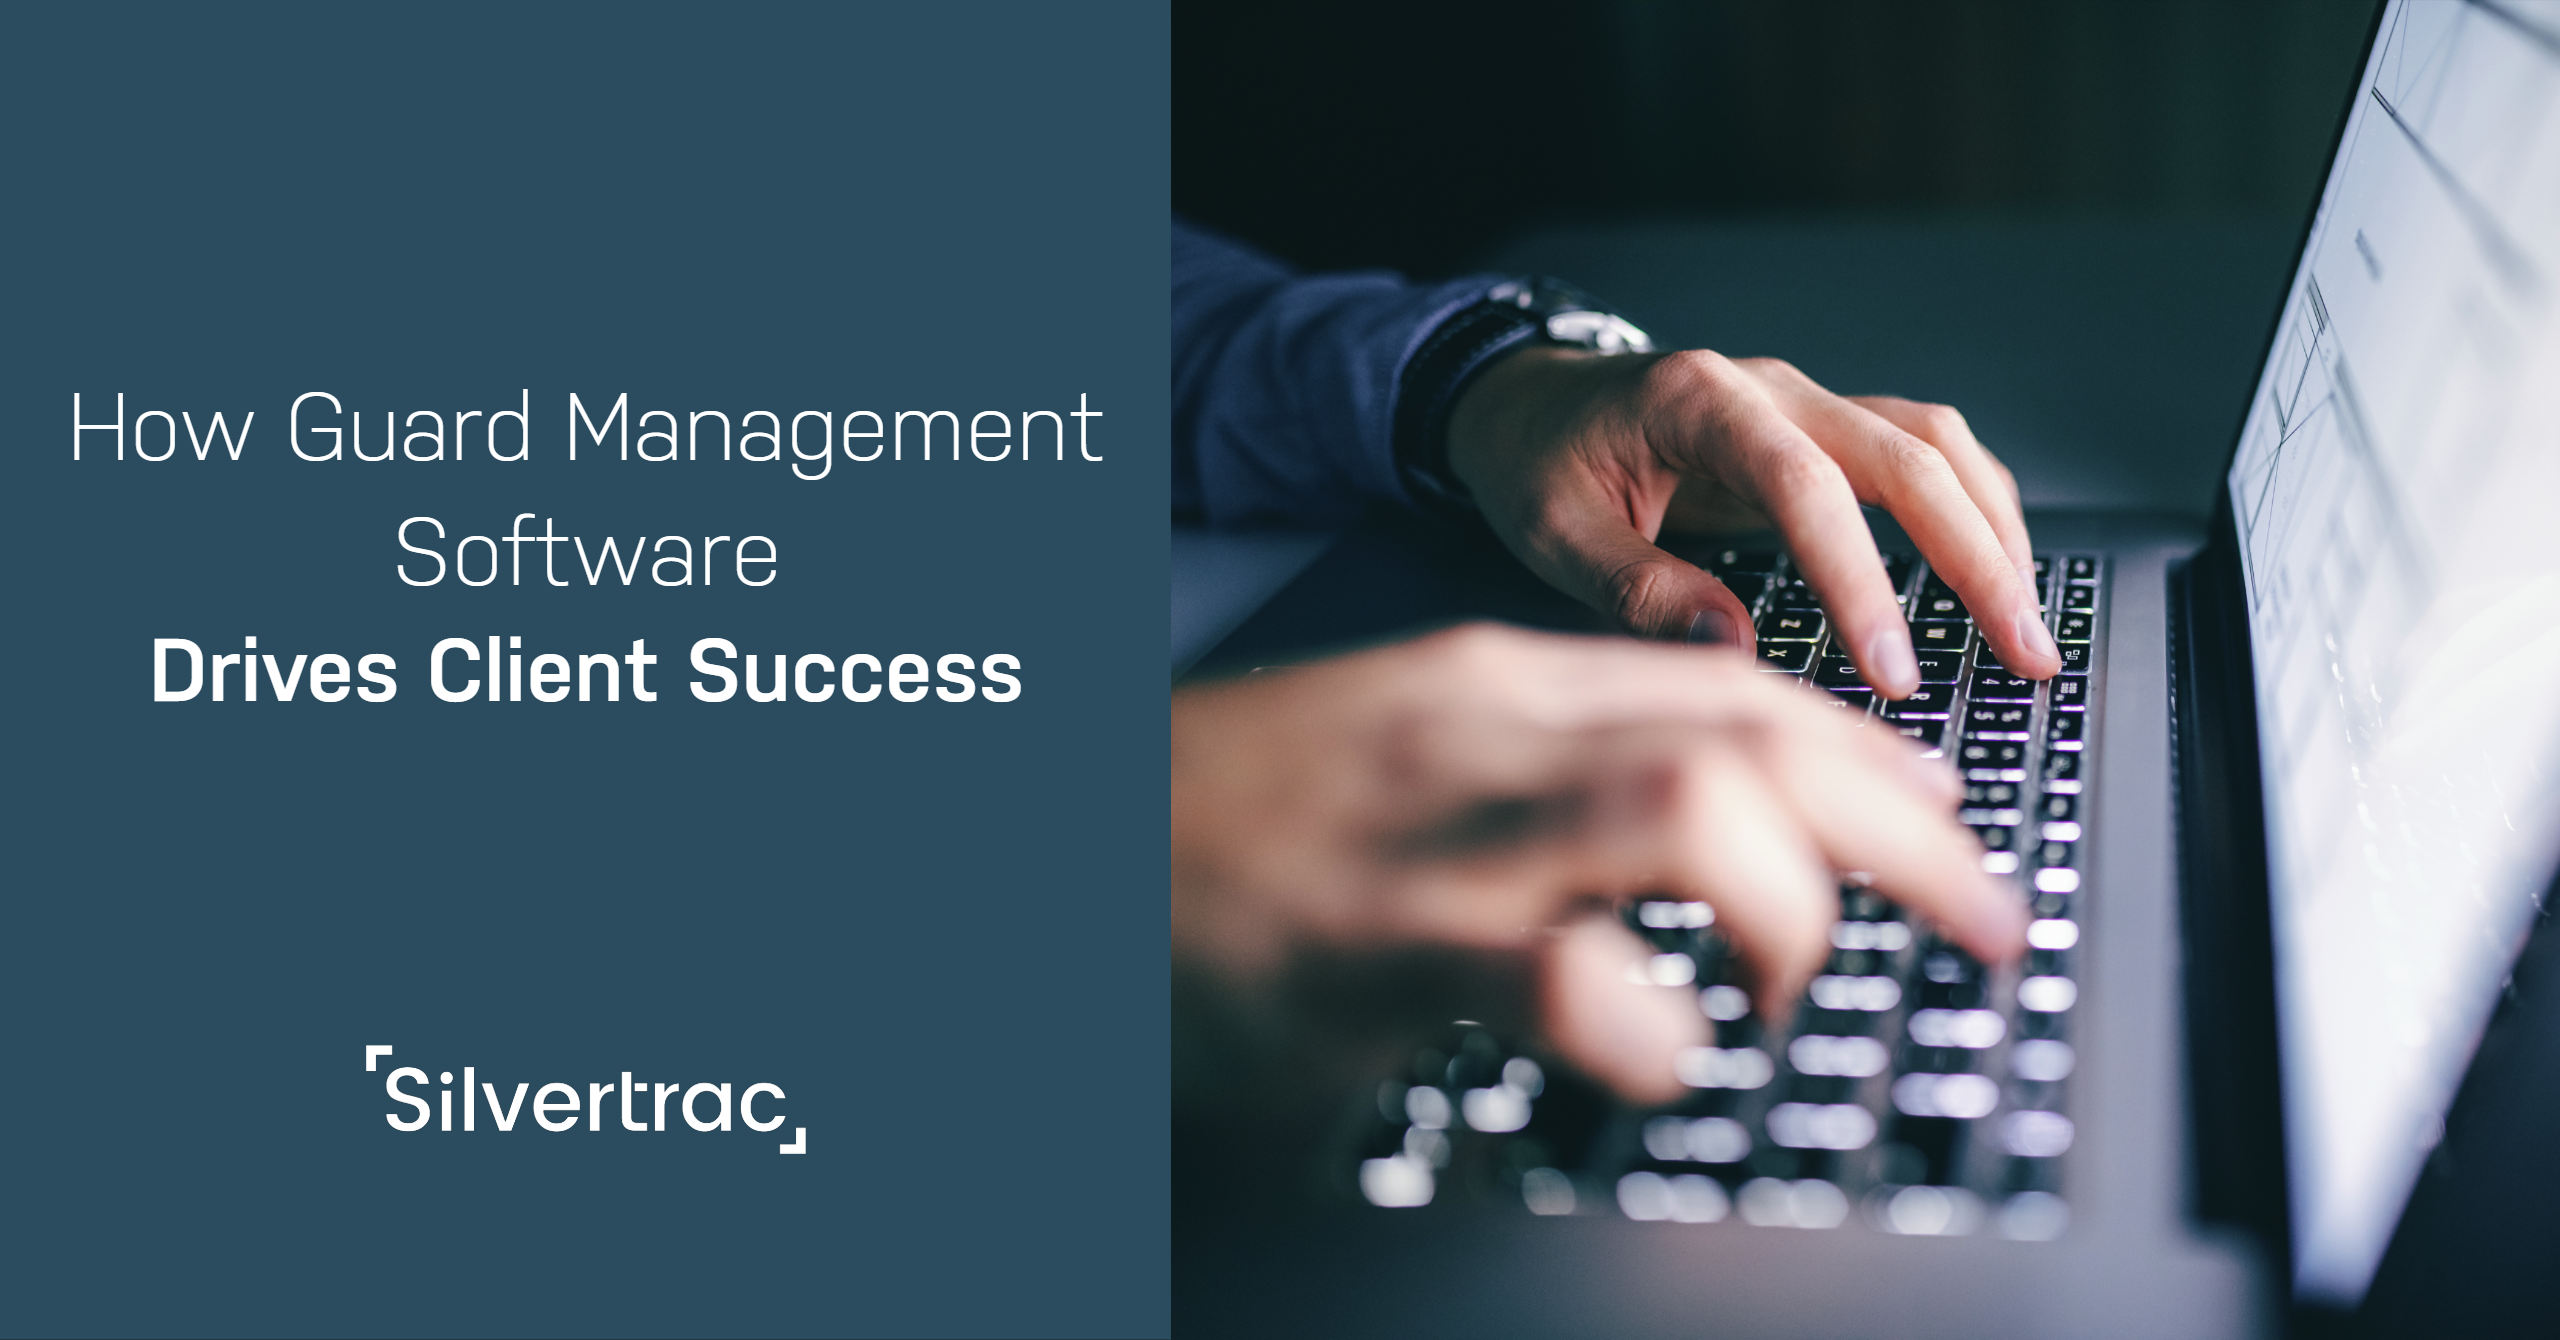 How Security Software Drives Client Success